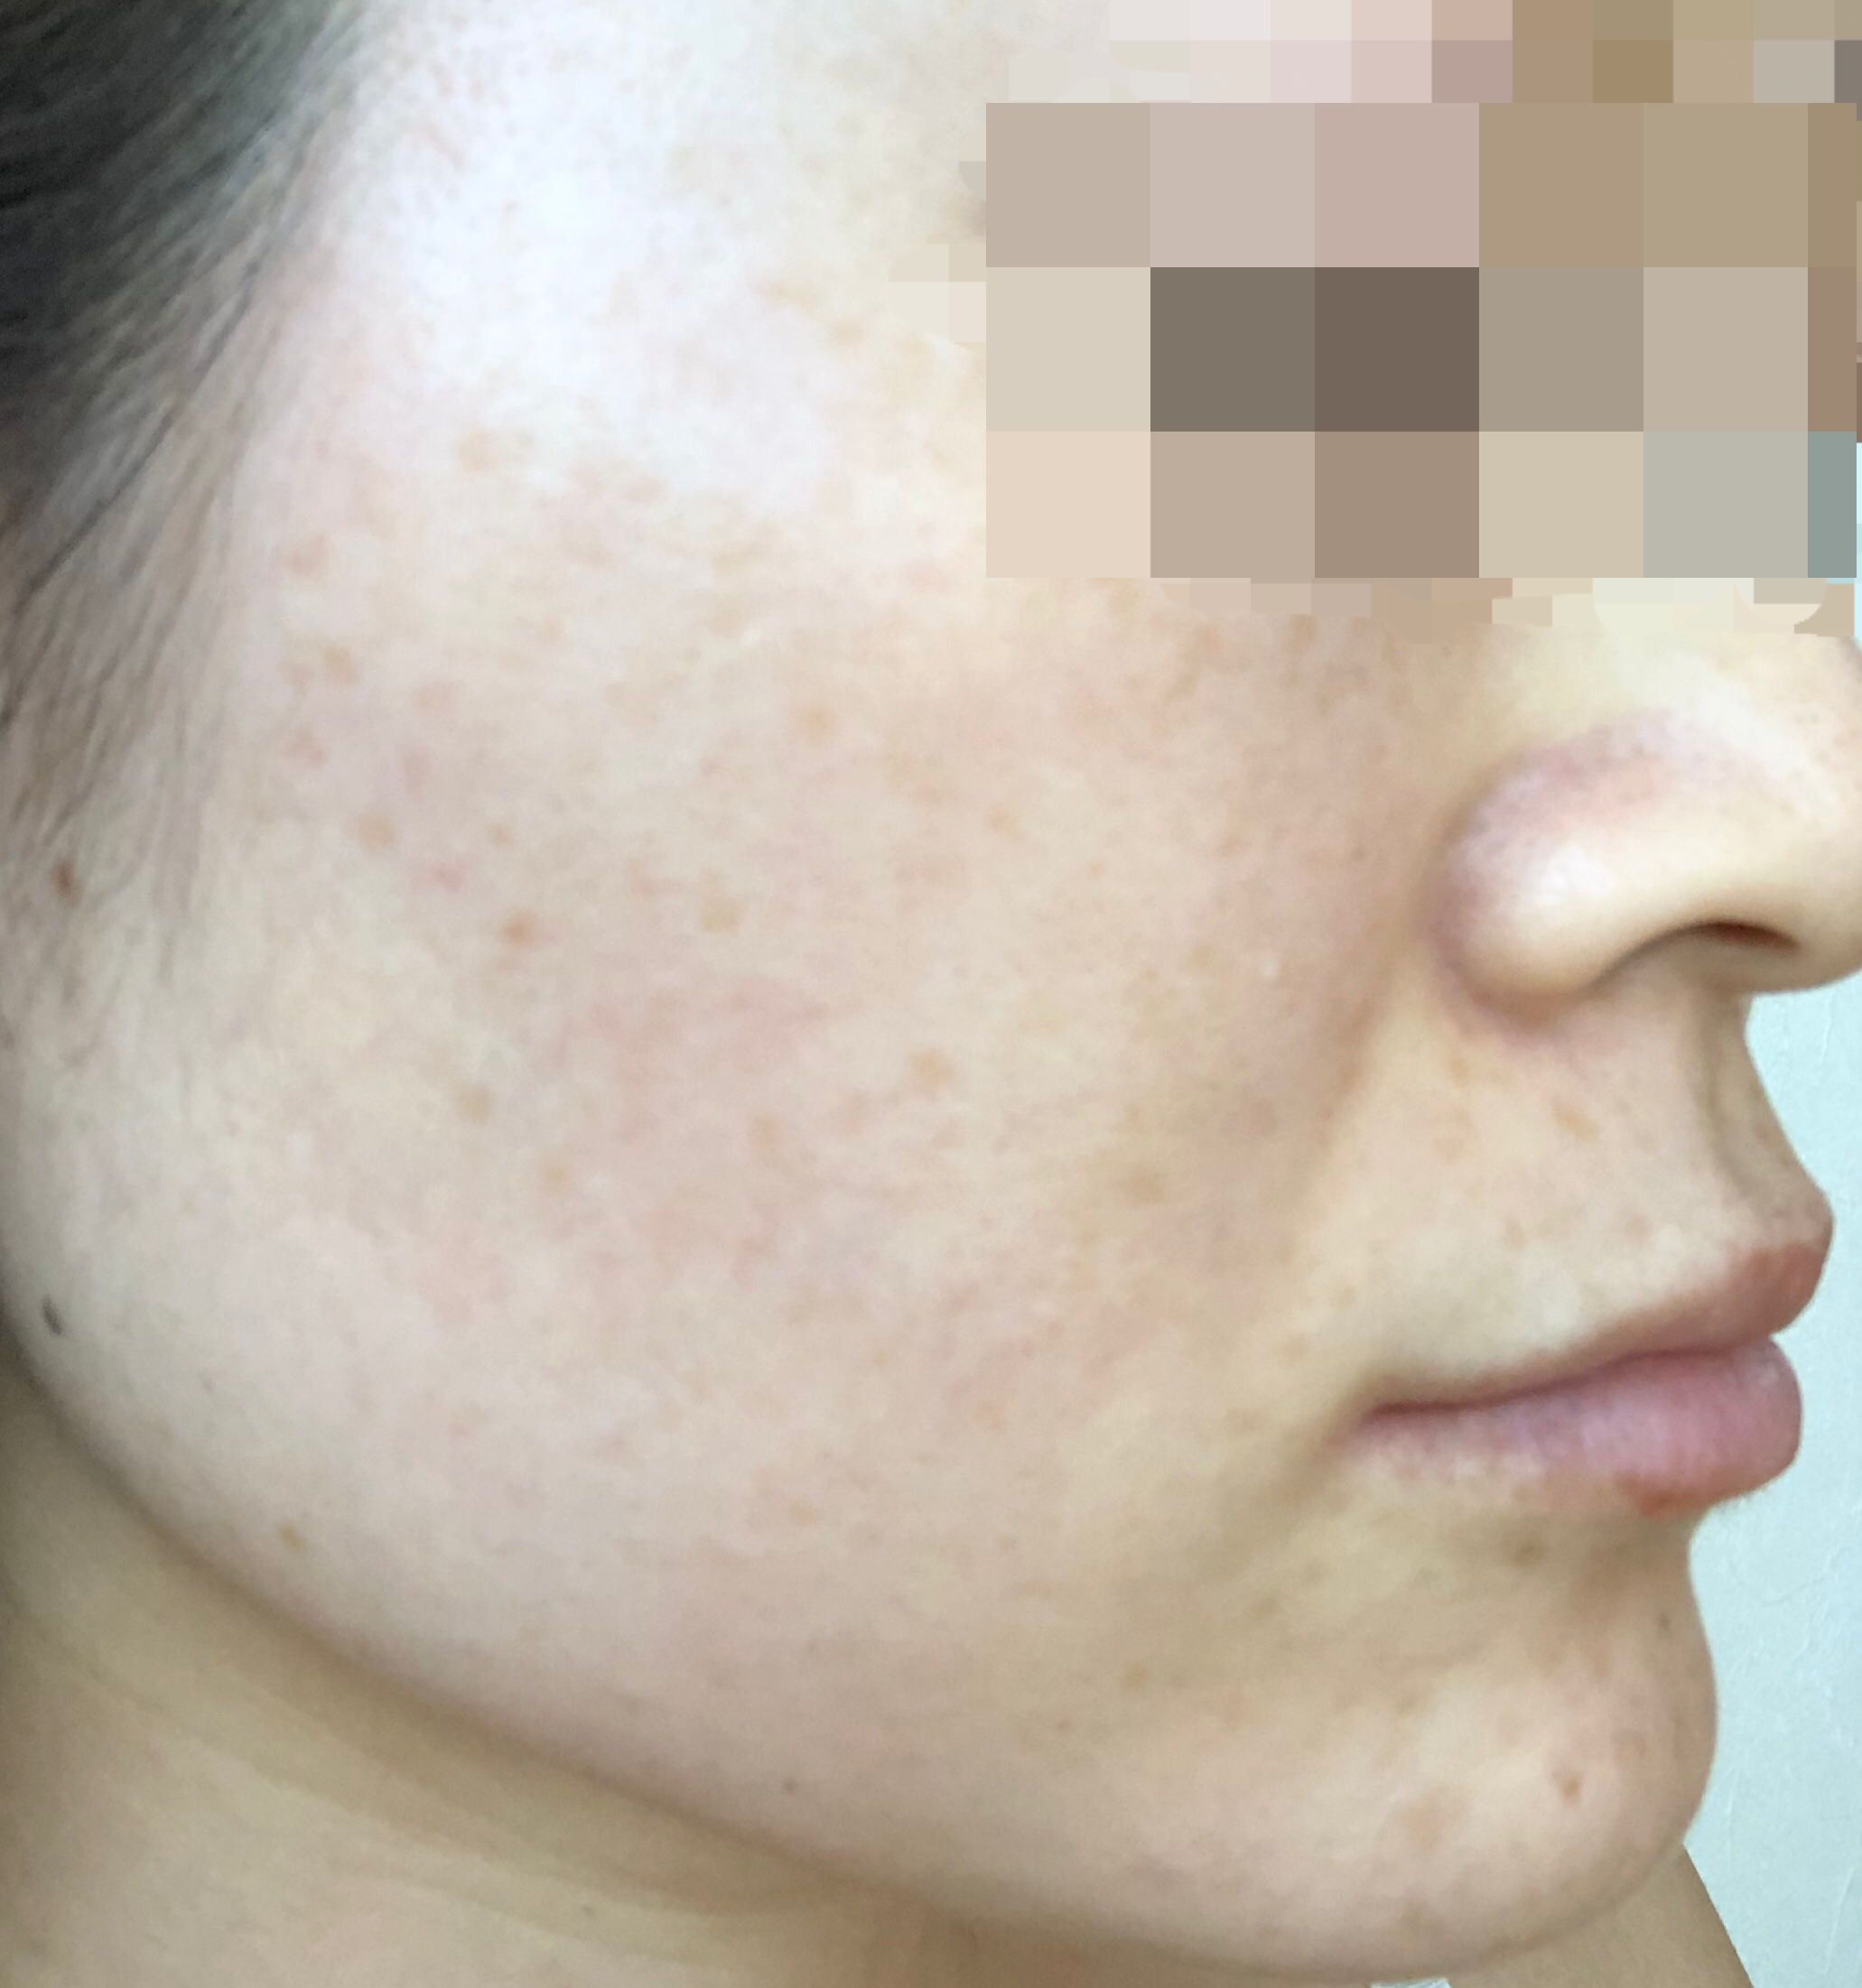 Before treatment (right)